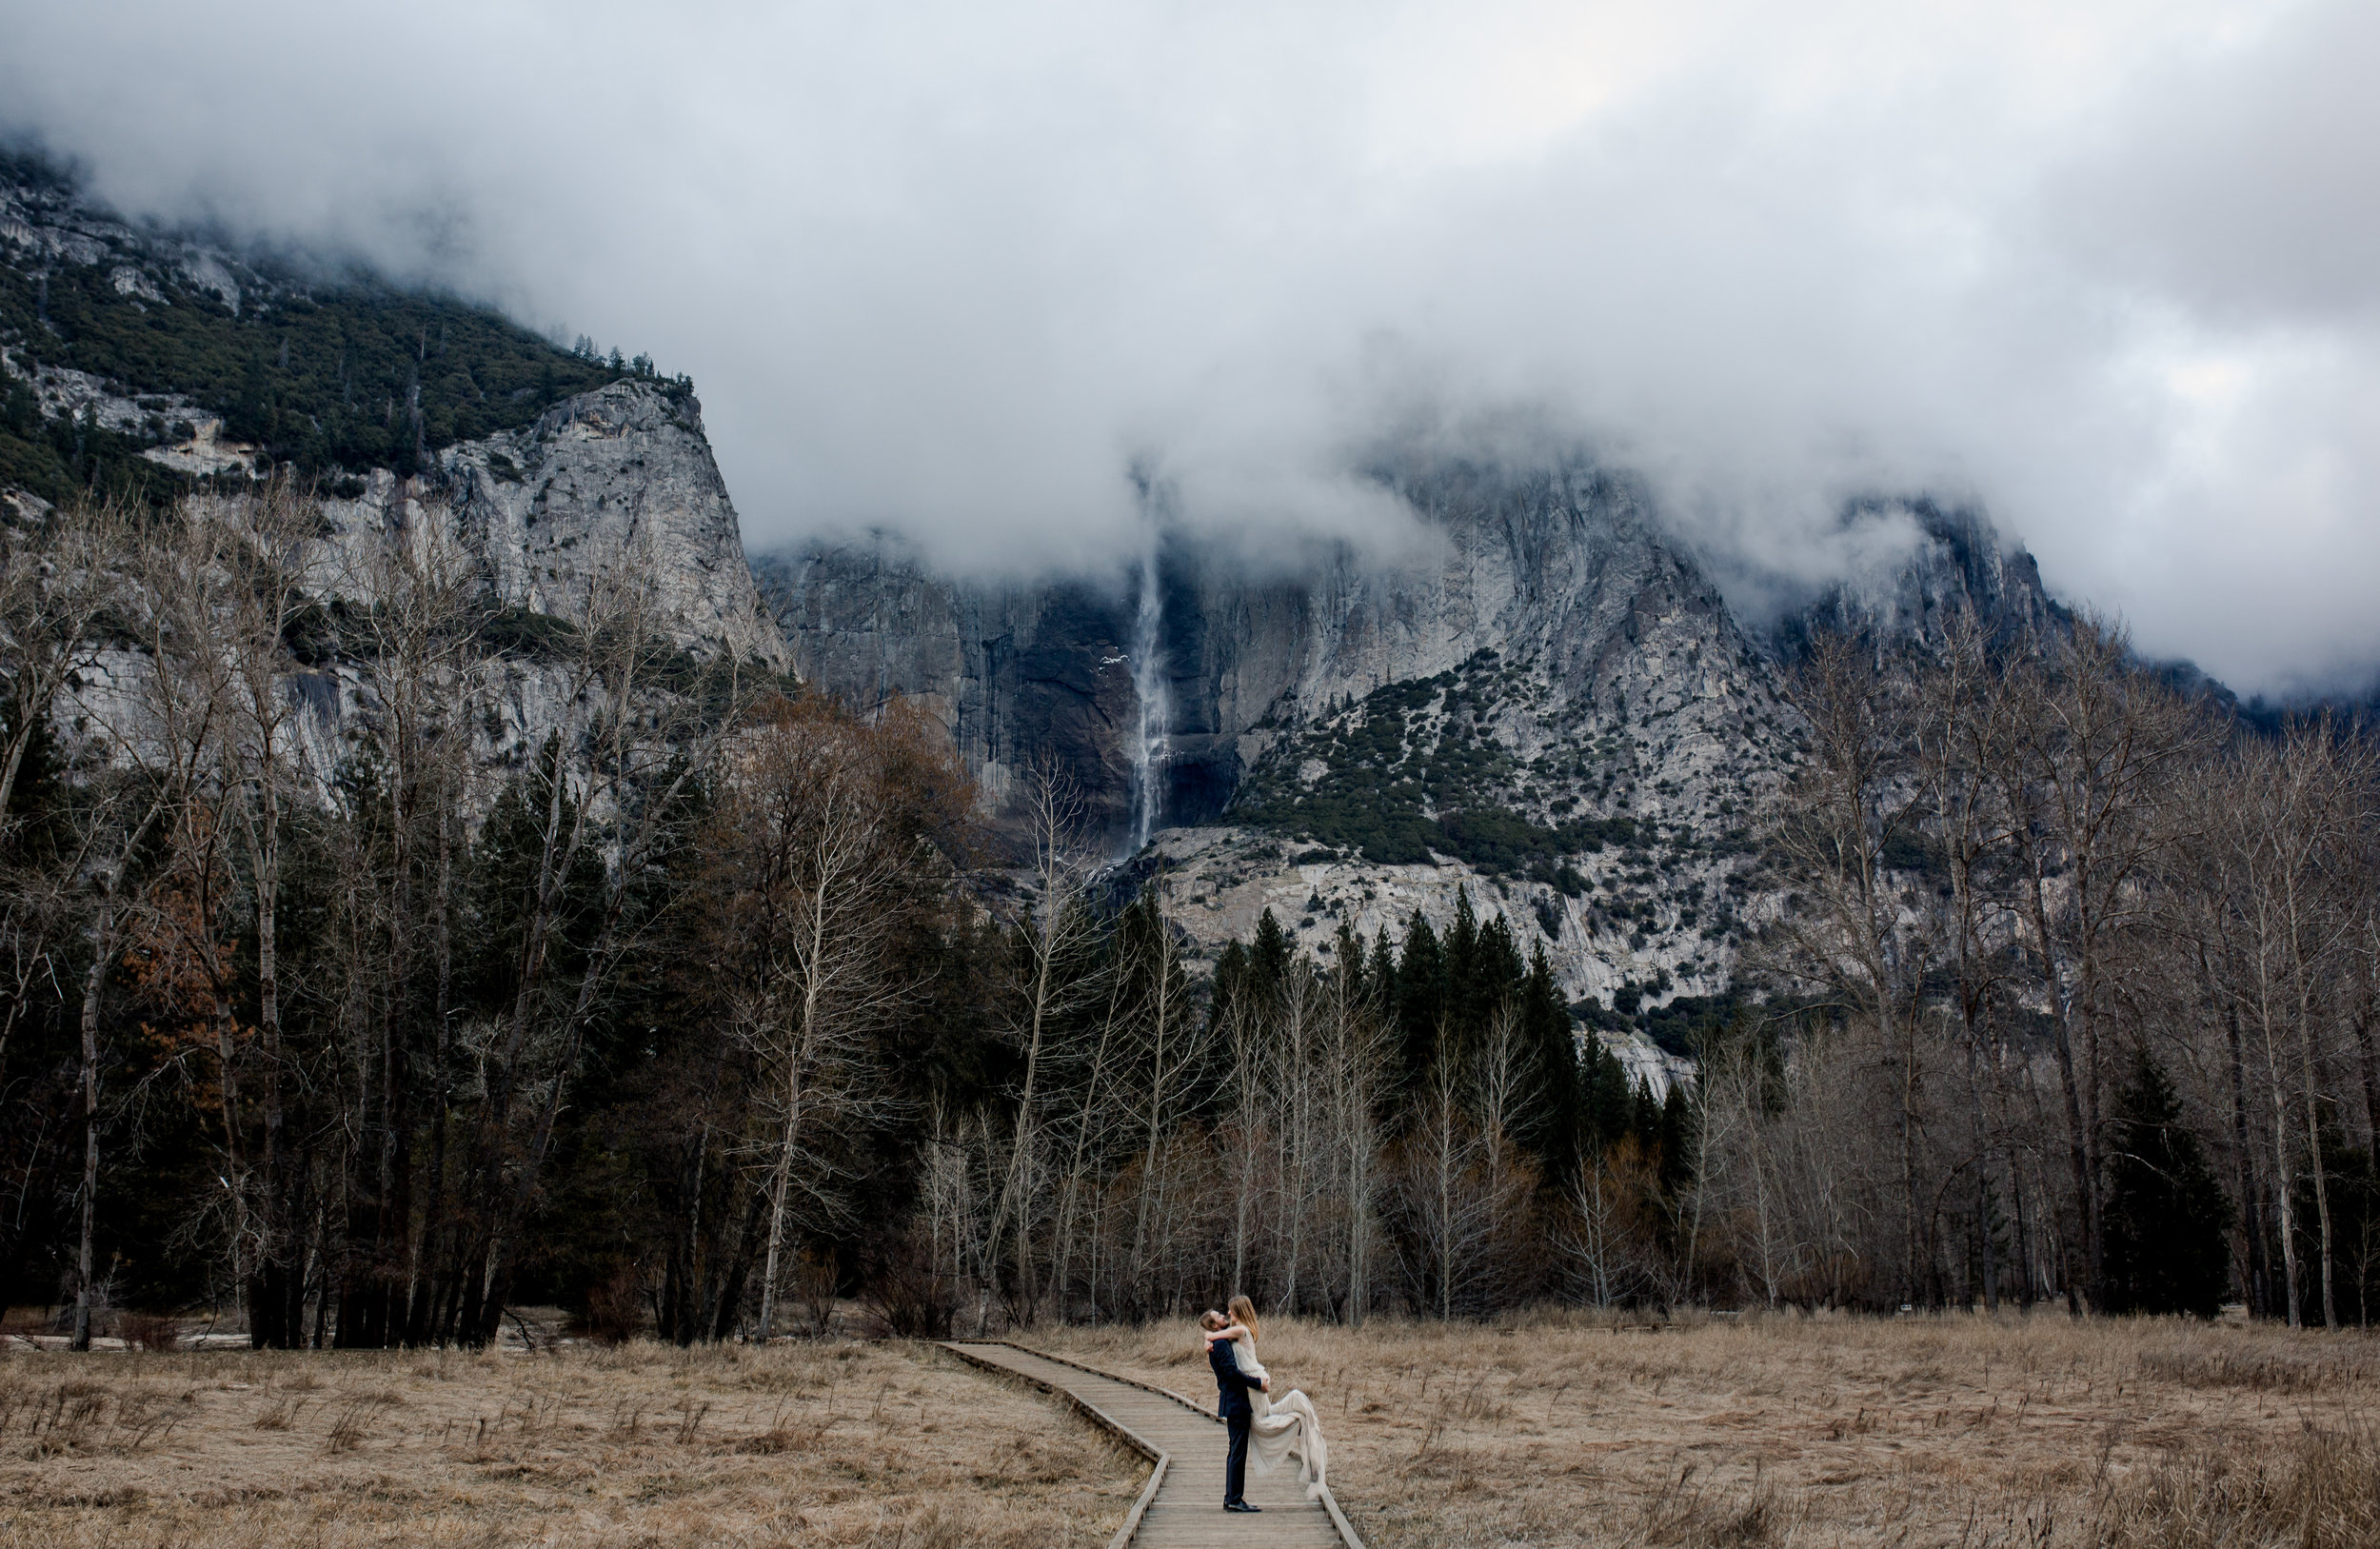 nicole-daacke-photography-yousemite-national-park-elopement-photographer-winter-cloud-moody-elope-inspiration-yosemite-valley-tunnel-view-winter-cloud-fog-weather-wedding-photos-97.jpg